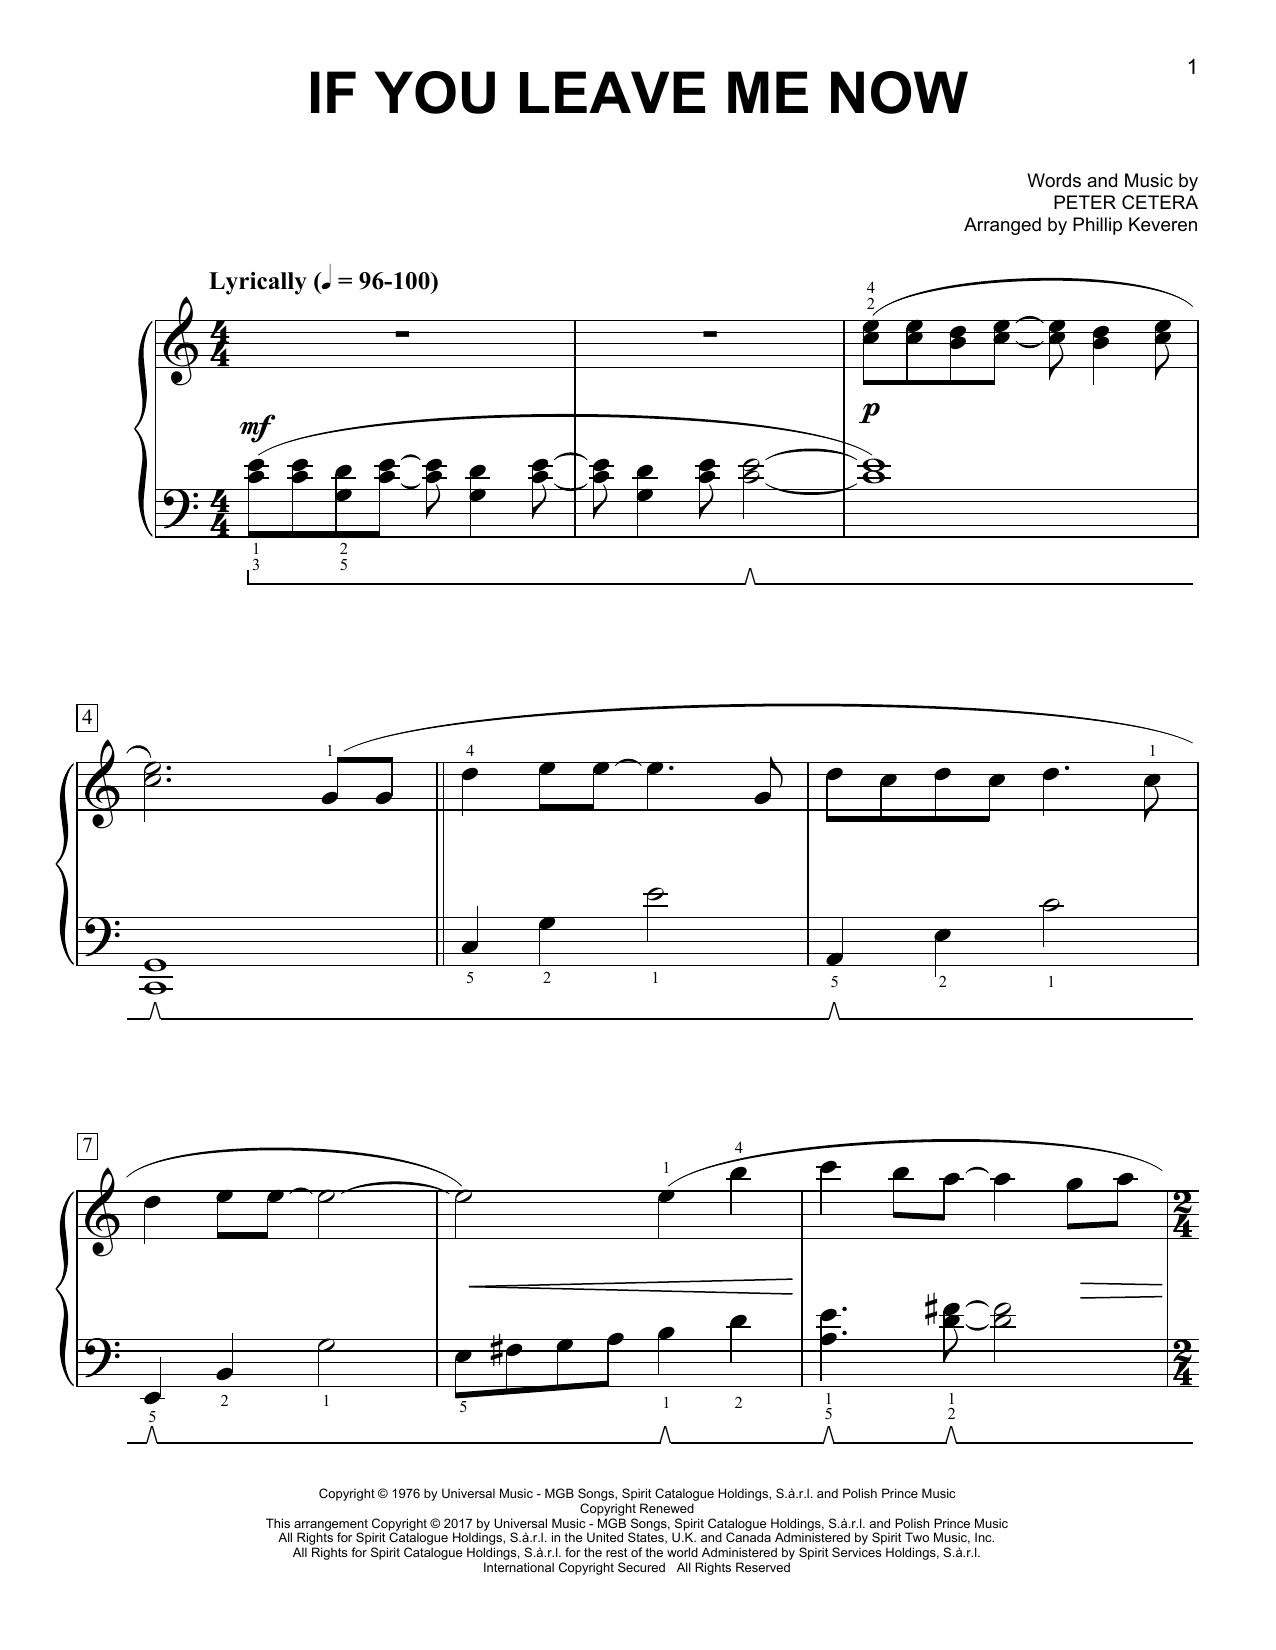 Sheet Music Digital Files To Print - Licensed Chicago